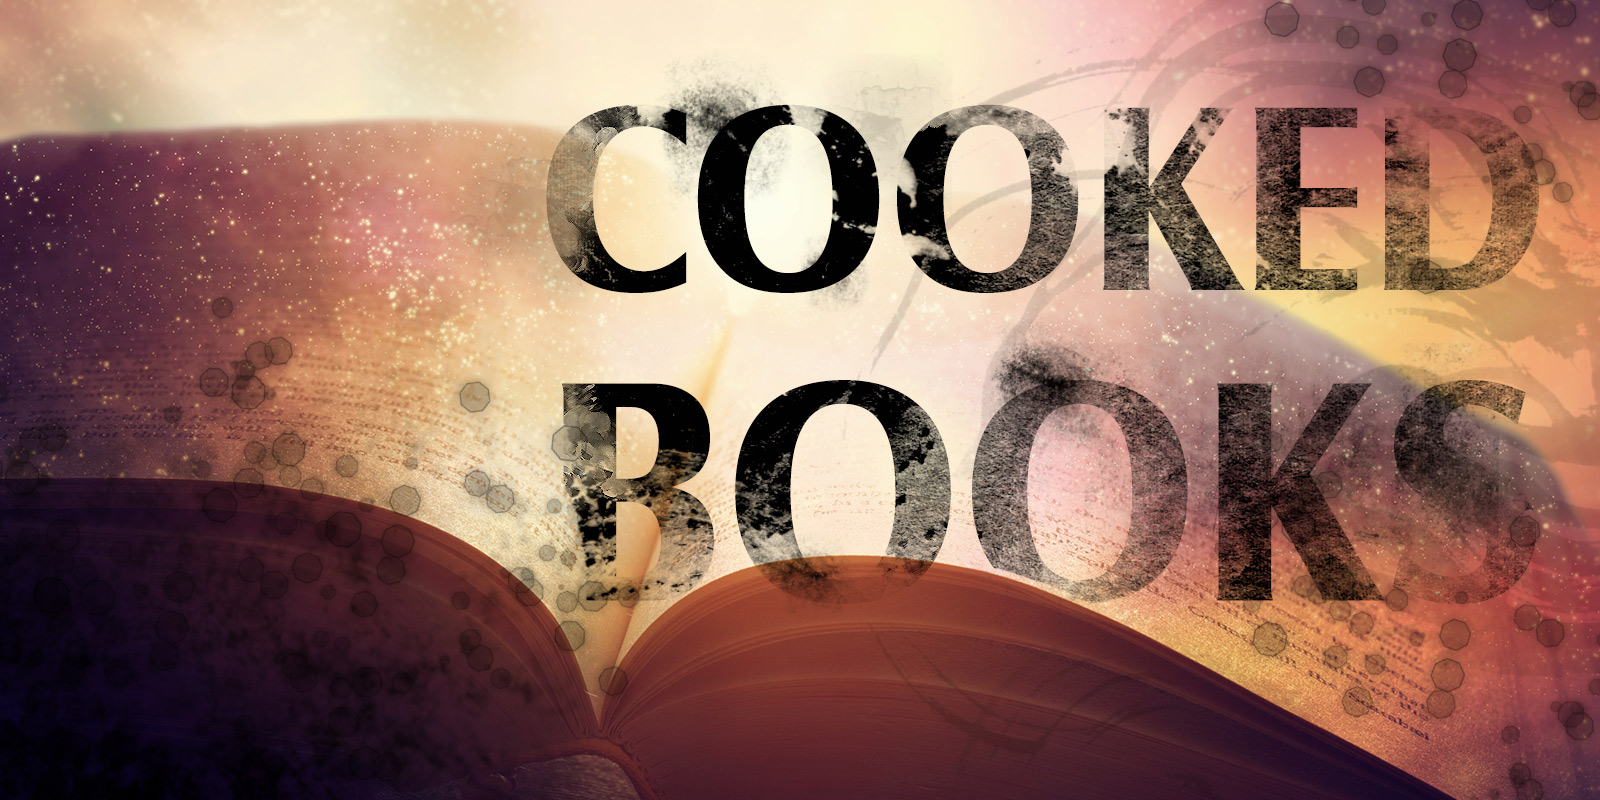 HF_021_CookedBooks